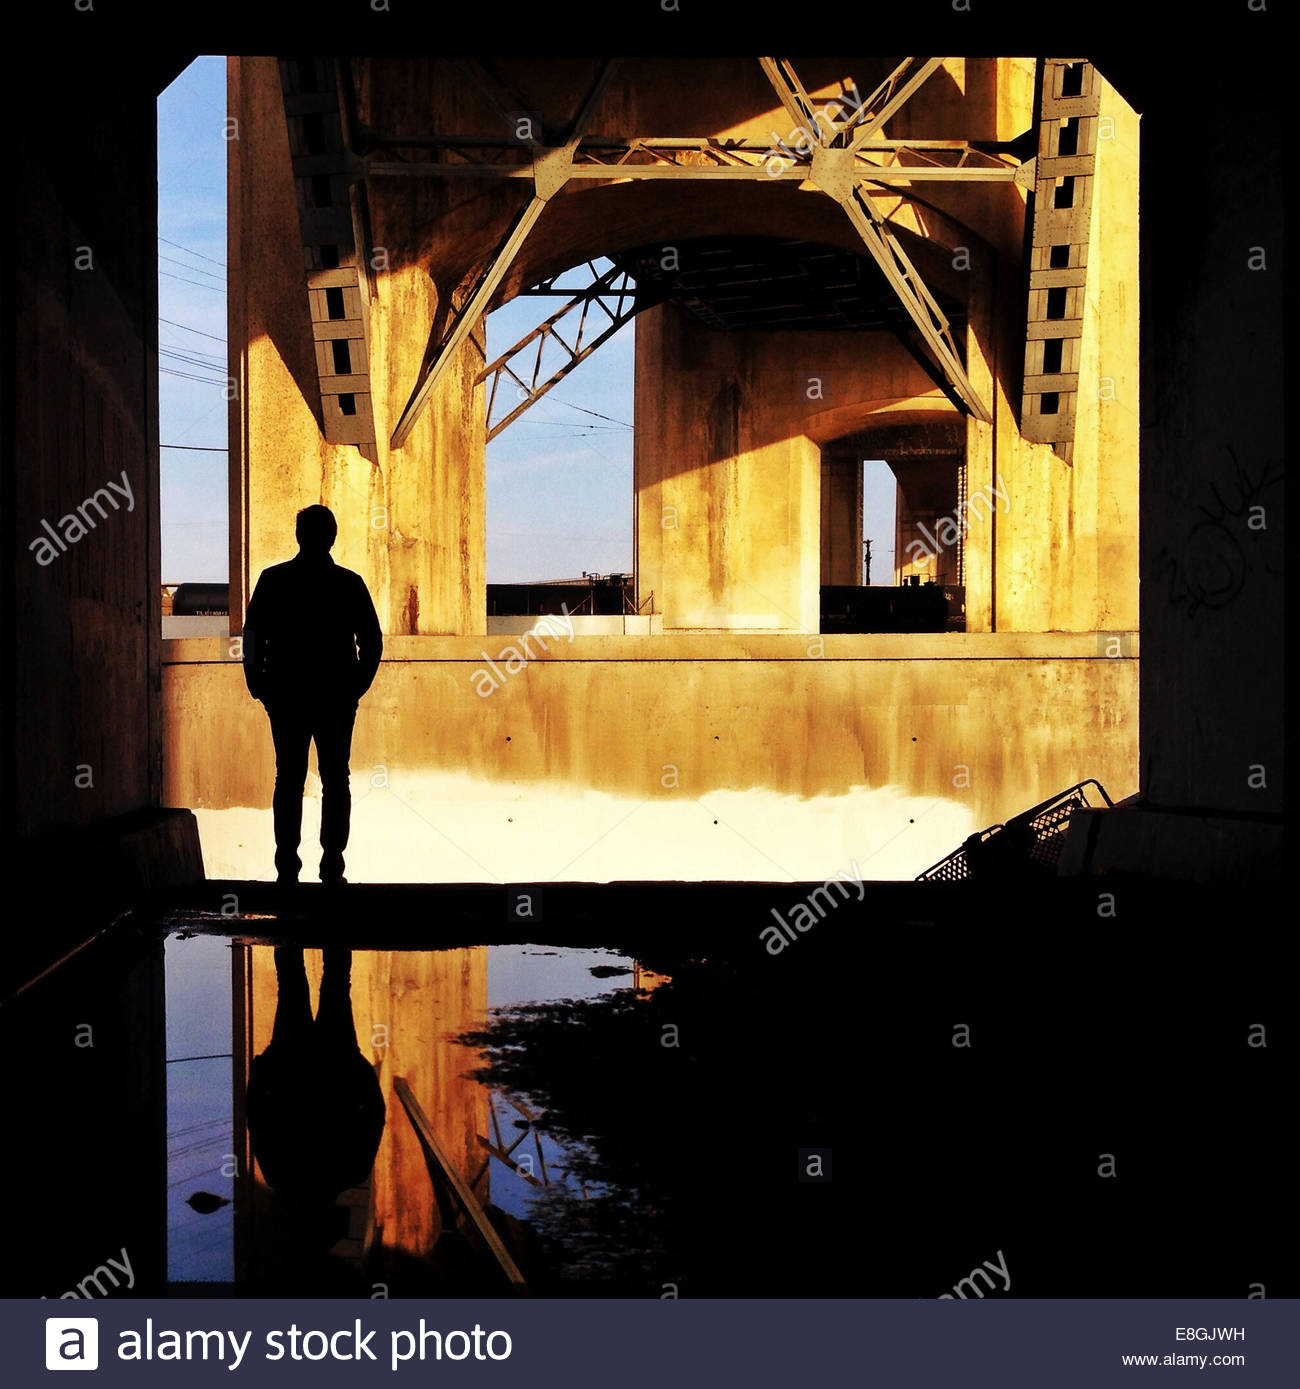 Silhouette of man standing under bridge - Stock Image